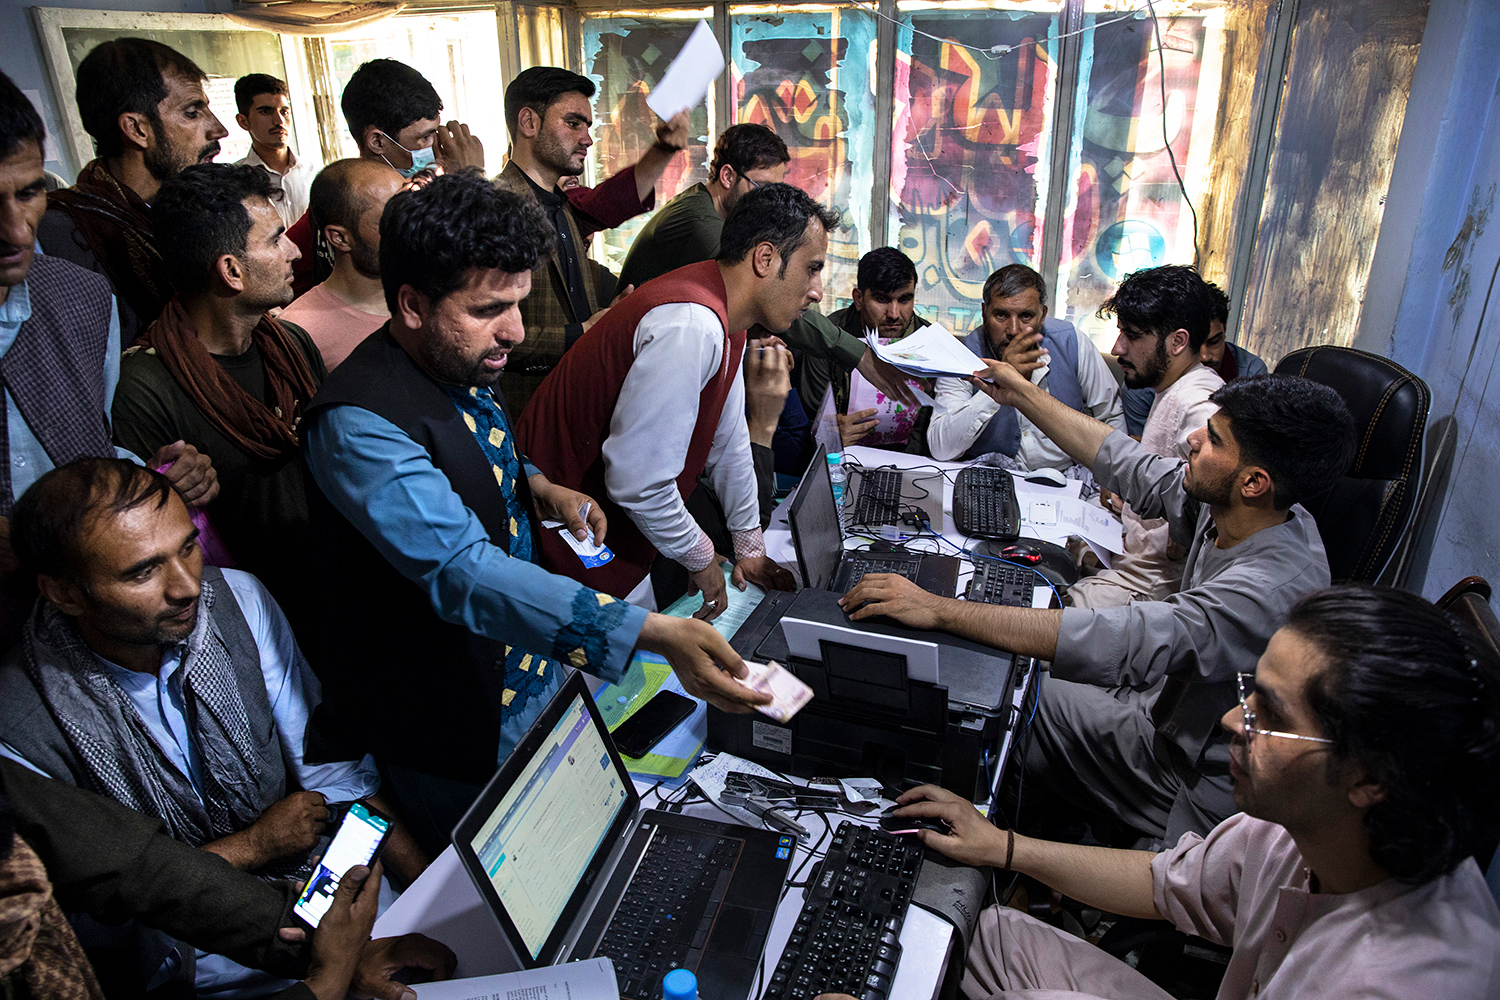 Afghan Special Immigrant Visa (SIV) applicants crowd into the Herat Kabul Internet cafe to apply for the SIV program on August 8, 2021 in Kabul, Afghanistan.